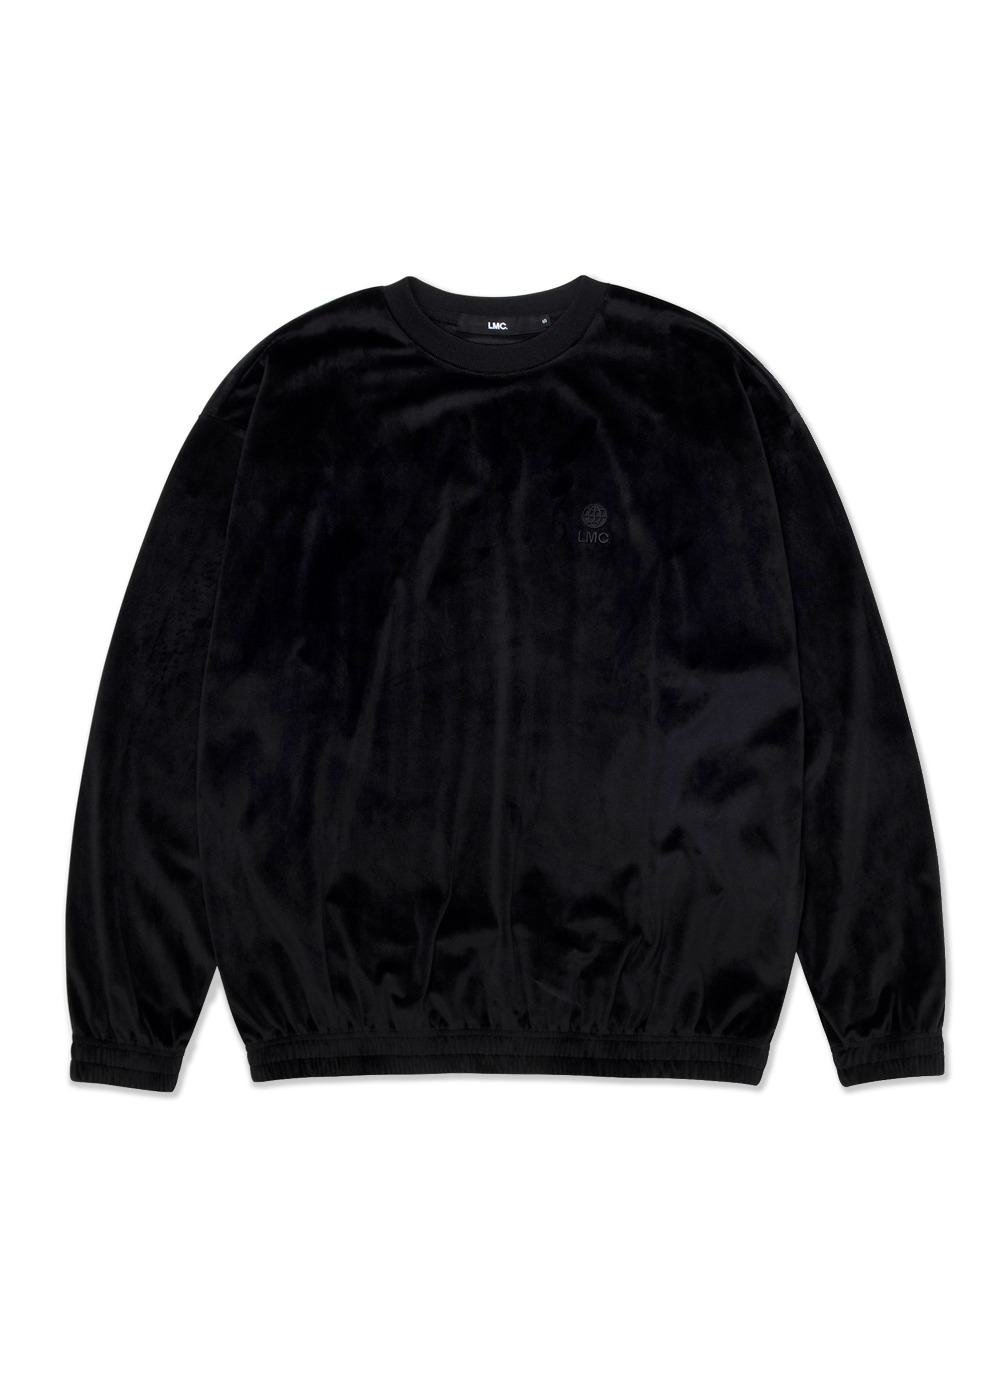 LMC VELOUR OVERSIZED SWEATSHIRT black